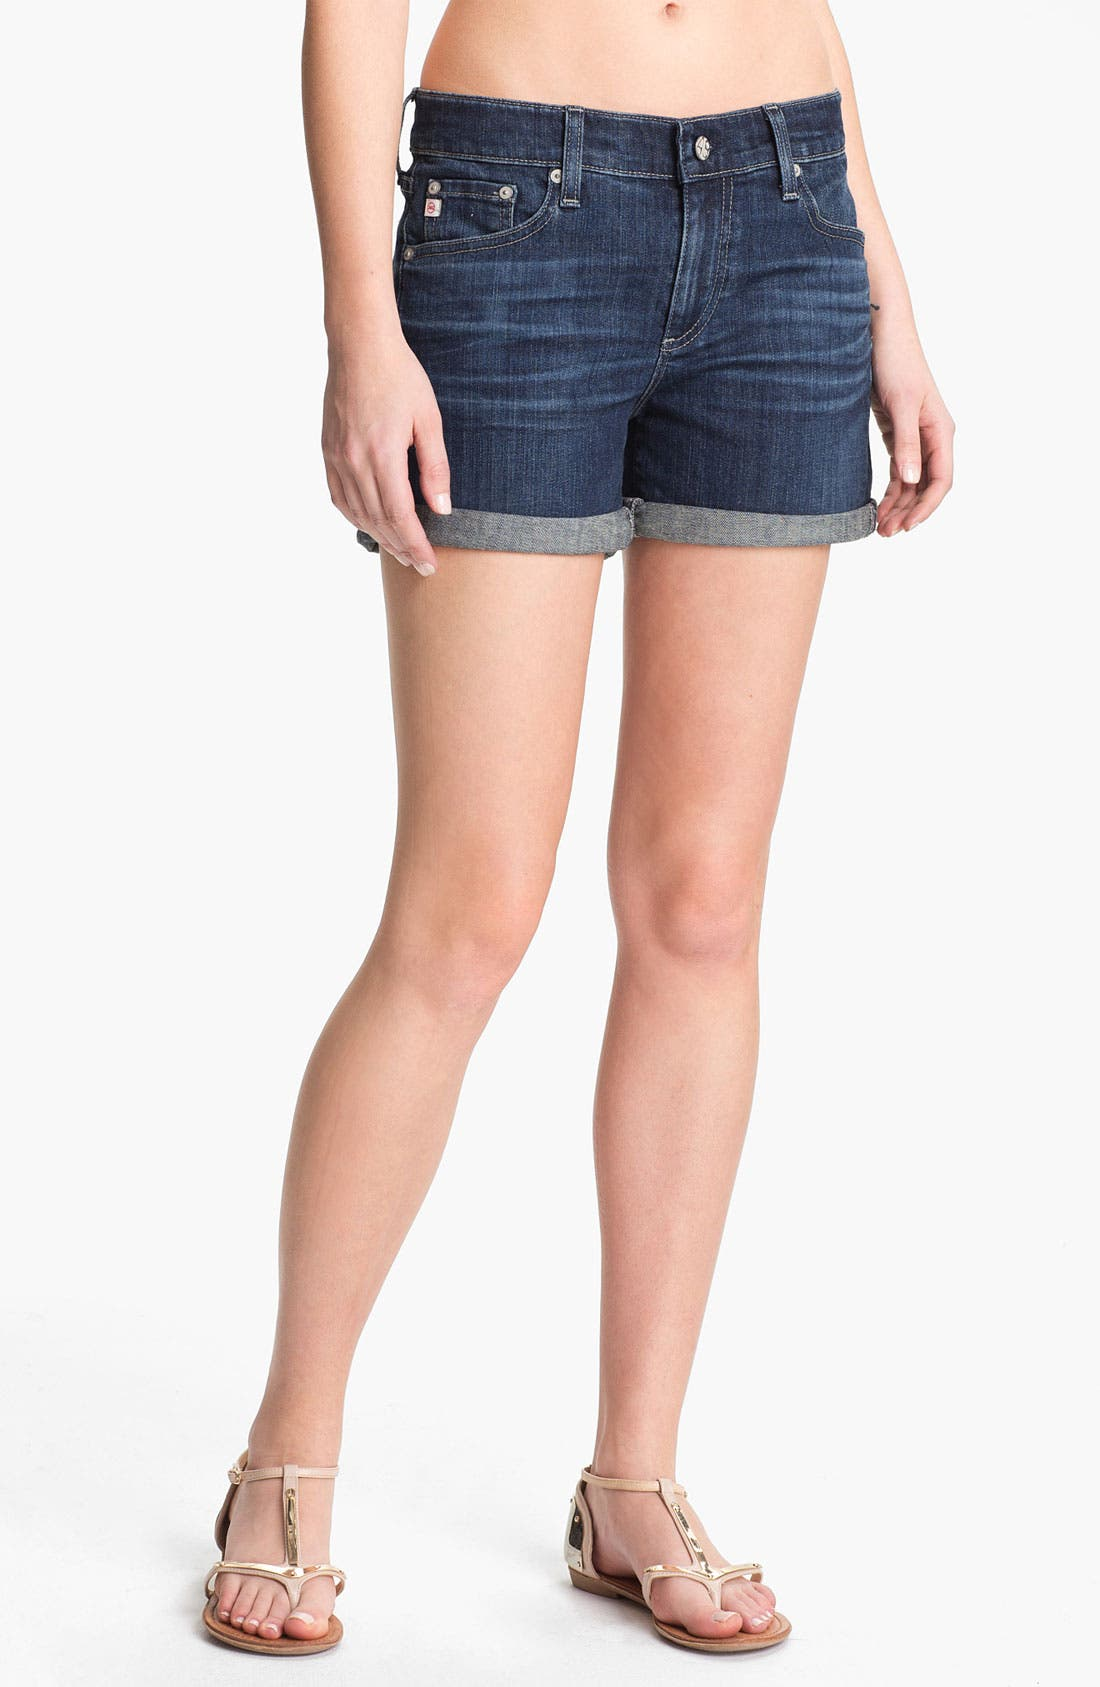 Alternate Image 1 Selected - AG 'Hailey' Cuff Denim Shorts (Four Year Brisk Blue)